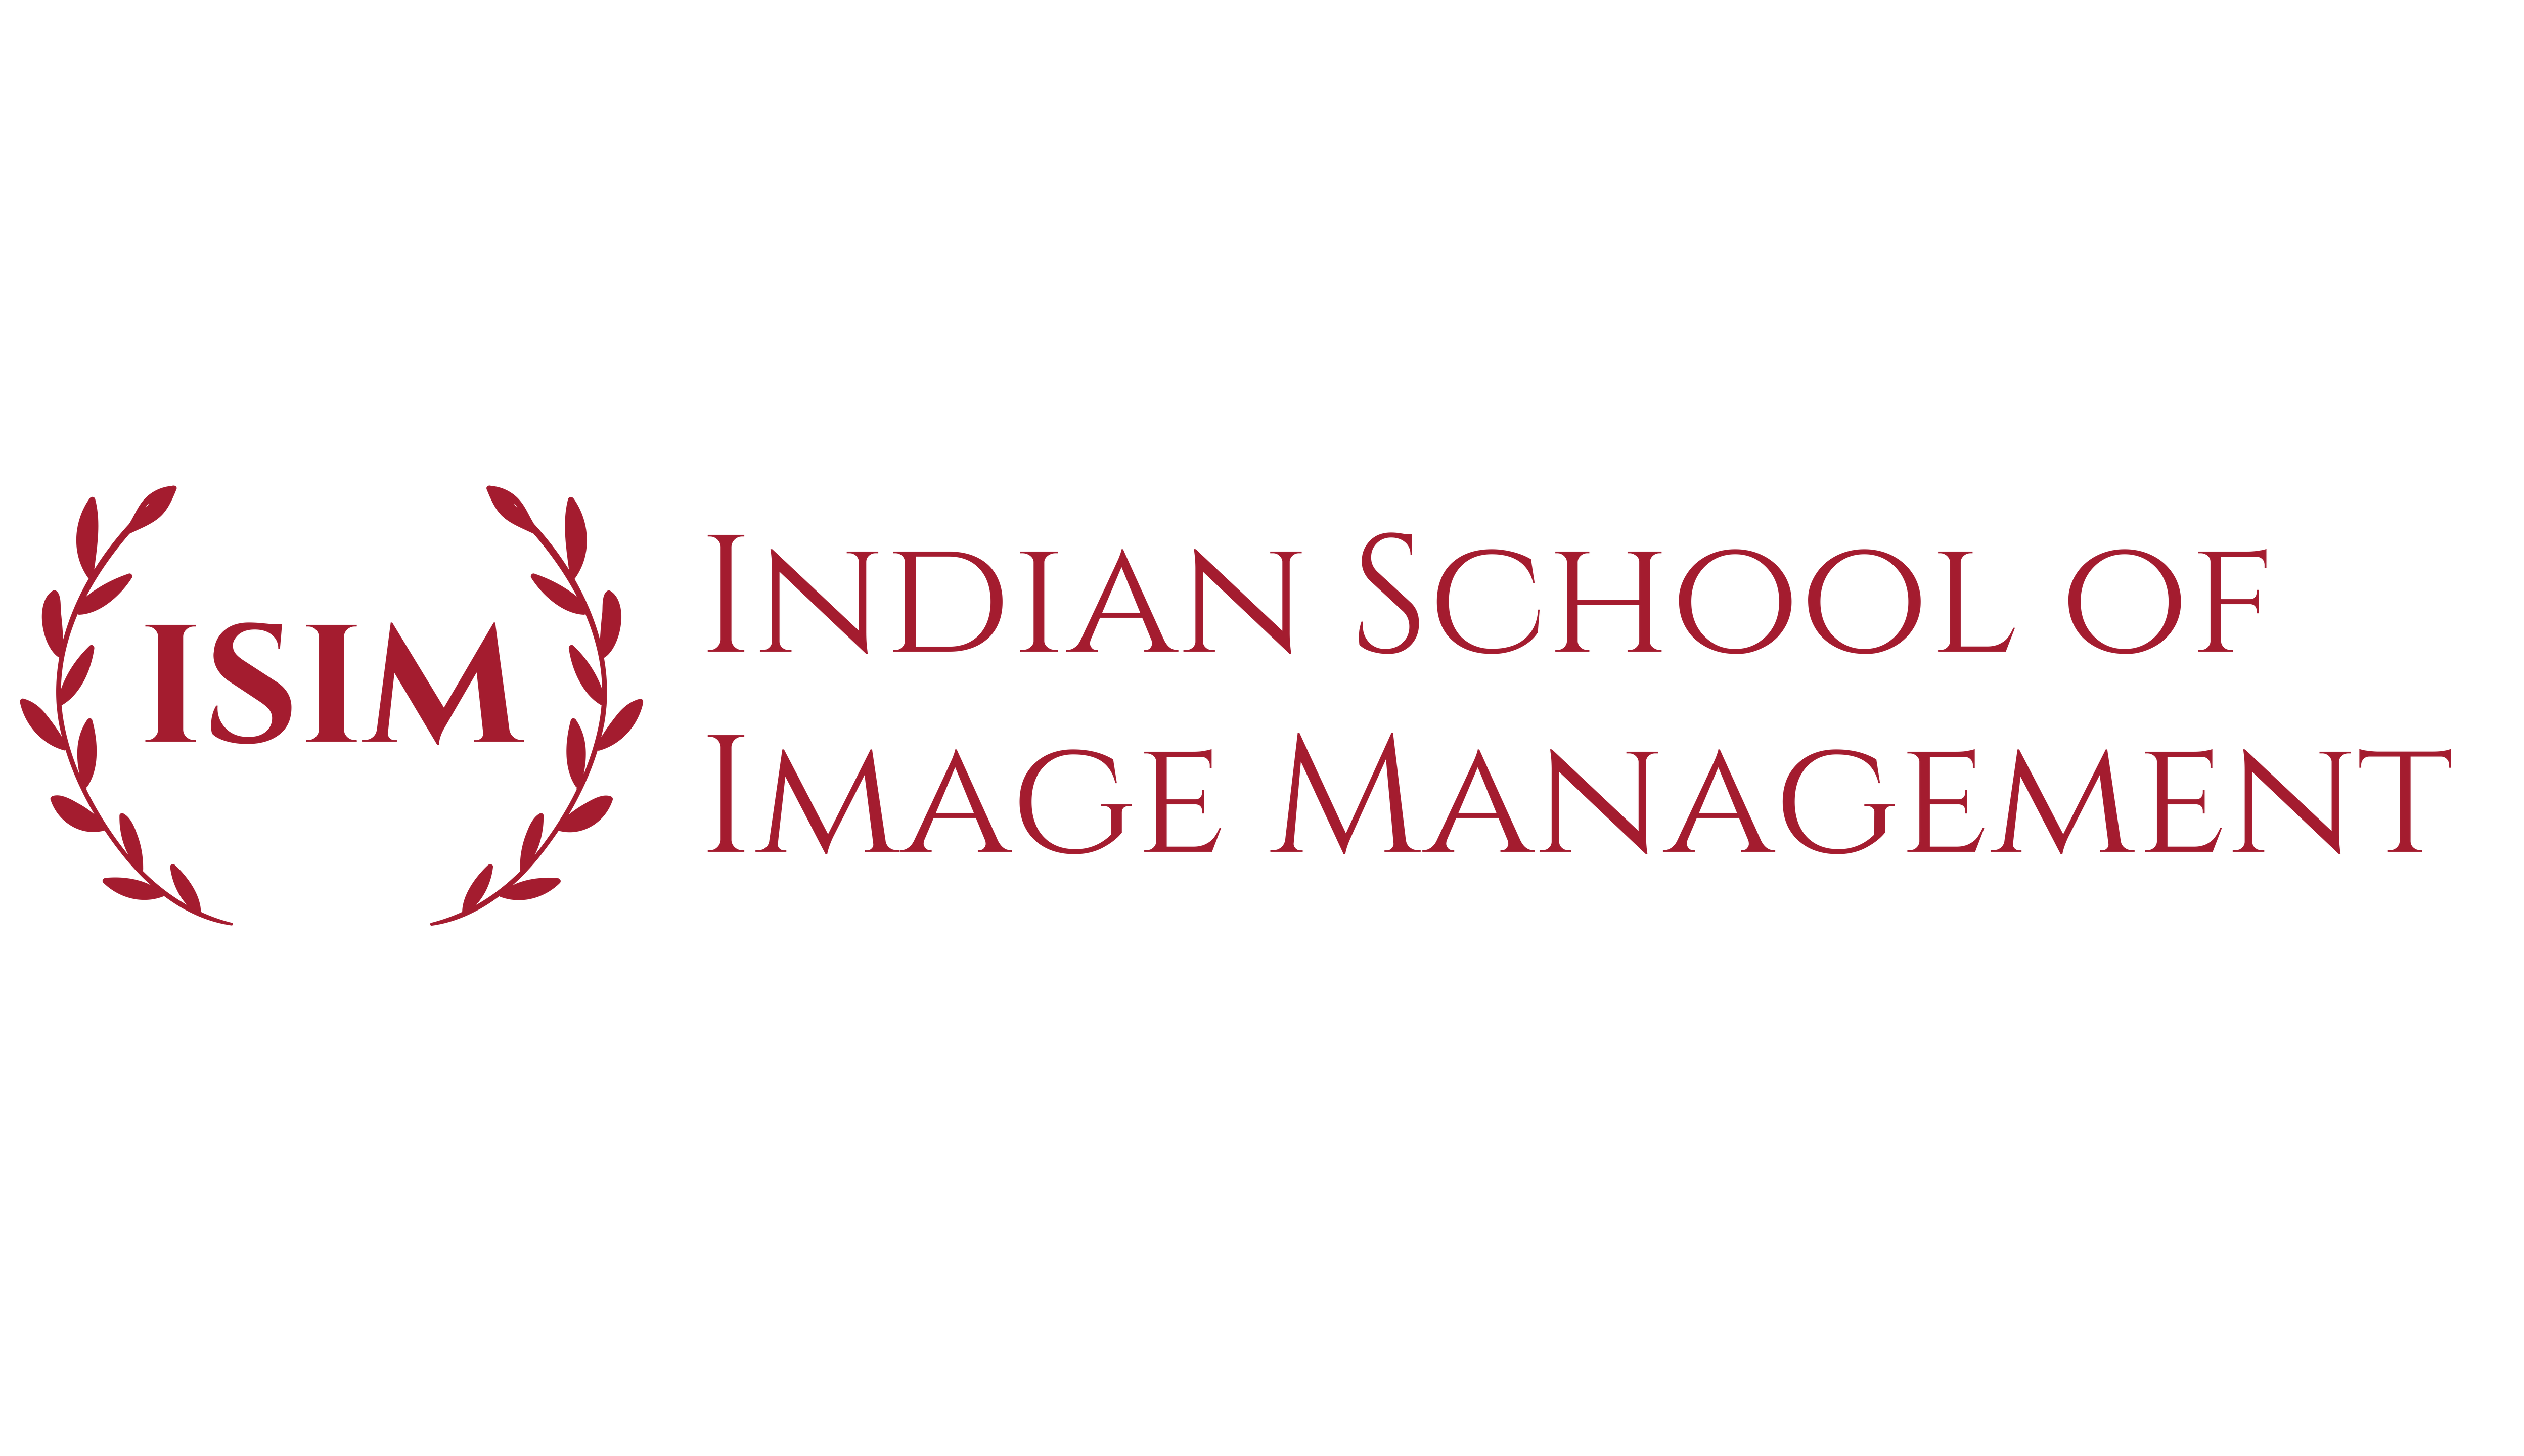 Indian School of Image Management